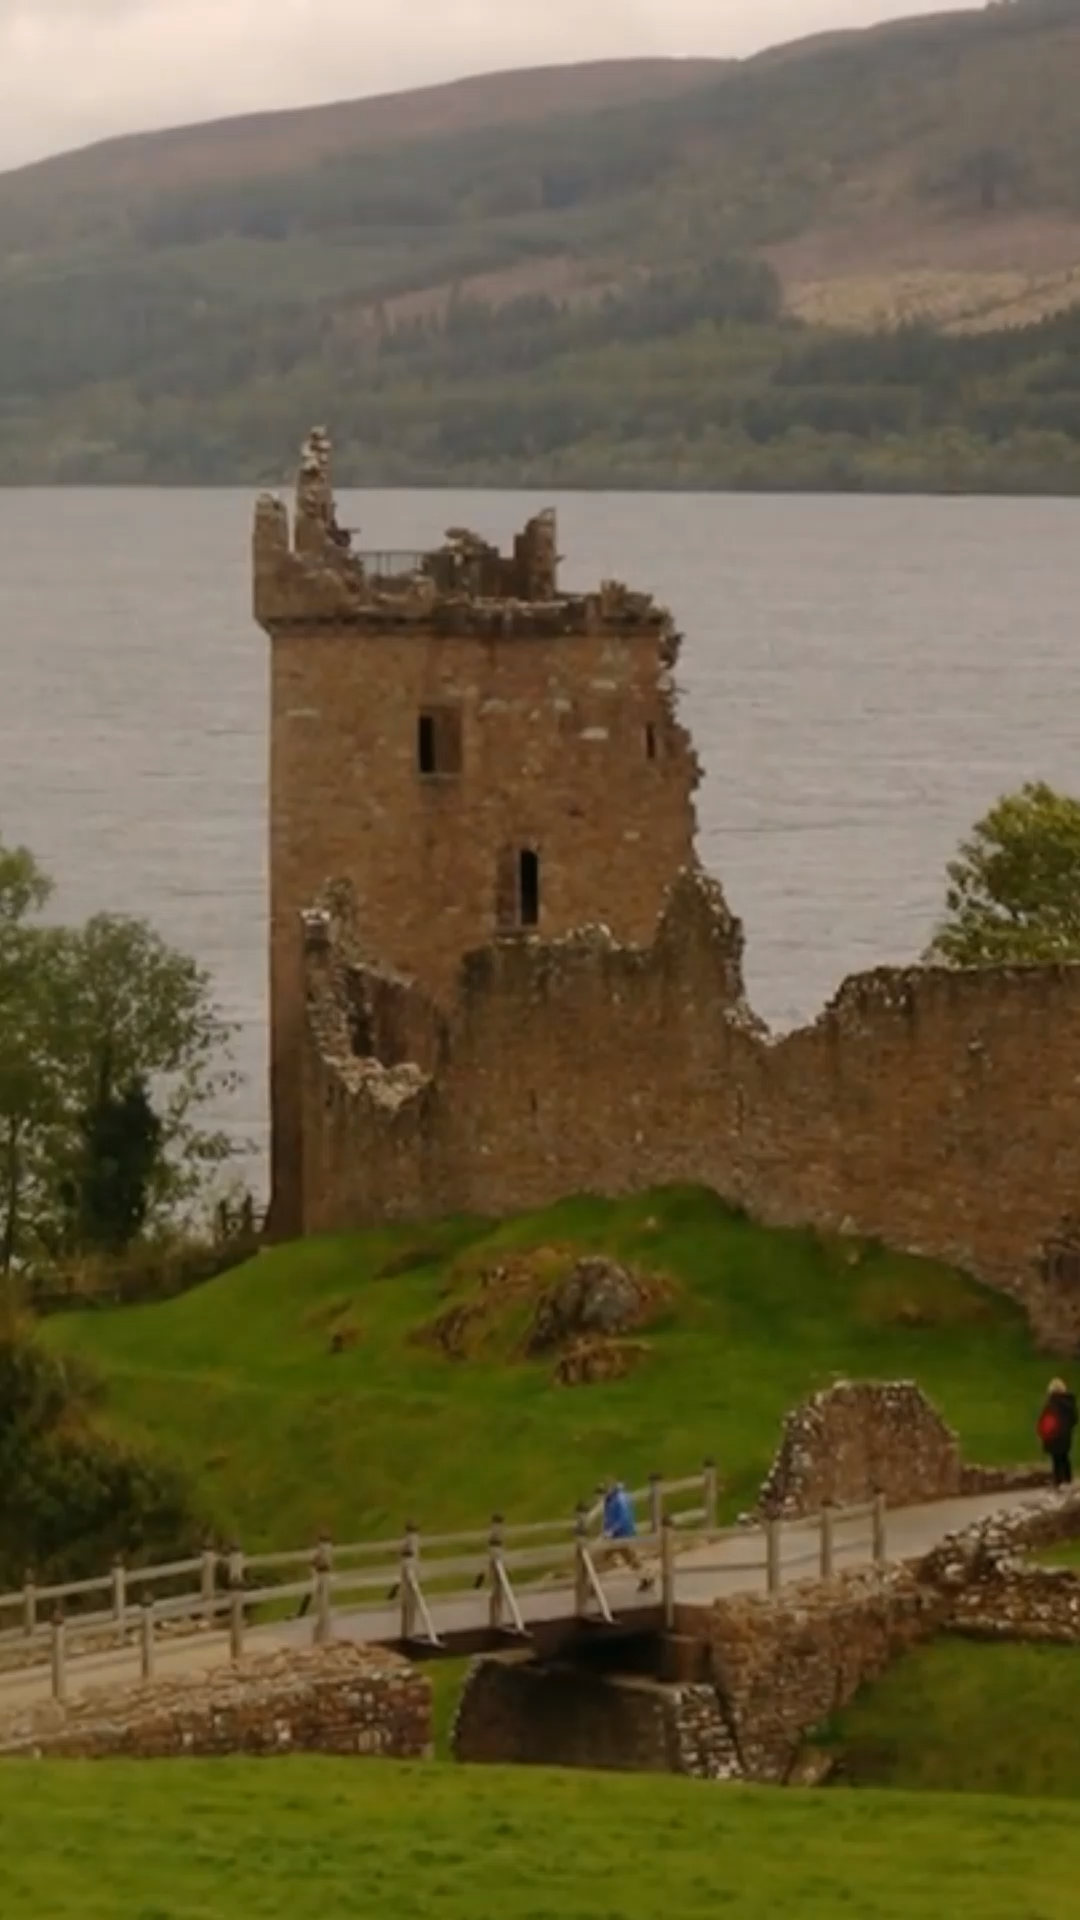 The Magnificently Situated Urquhart Castle overlooking Loch Ness. A Clan Grant stronghold, Urquhart Castle stands with commanding presence guarding the Great Glen. The castle was begun in the 13th century, and because of its strategic position, it has a complex history of military offense and defence, as well as its own destruction and renovation. It was fought over by Robert the Bruce of Scotland and Edward I of England during the Wars of Independence in the 13th century.